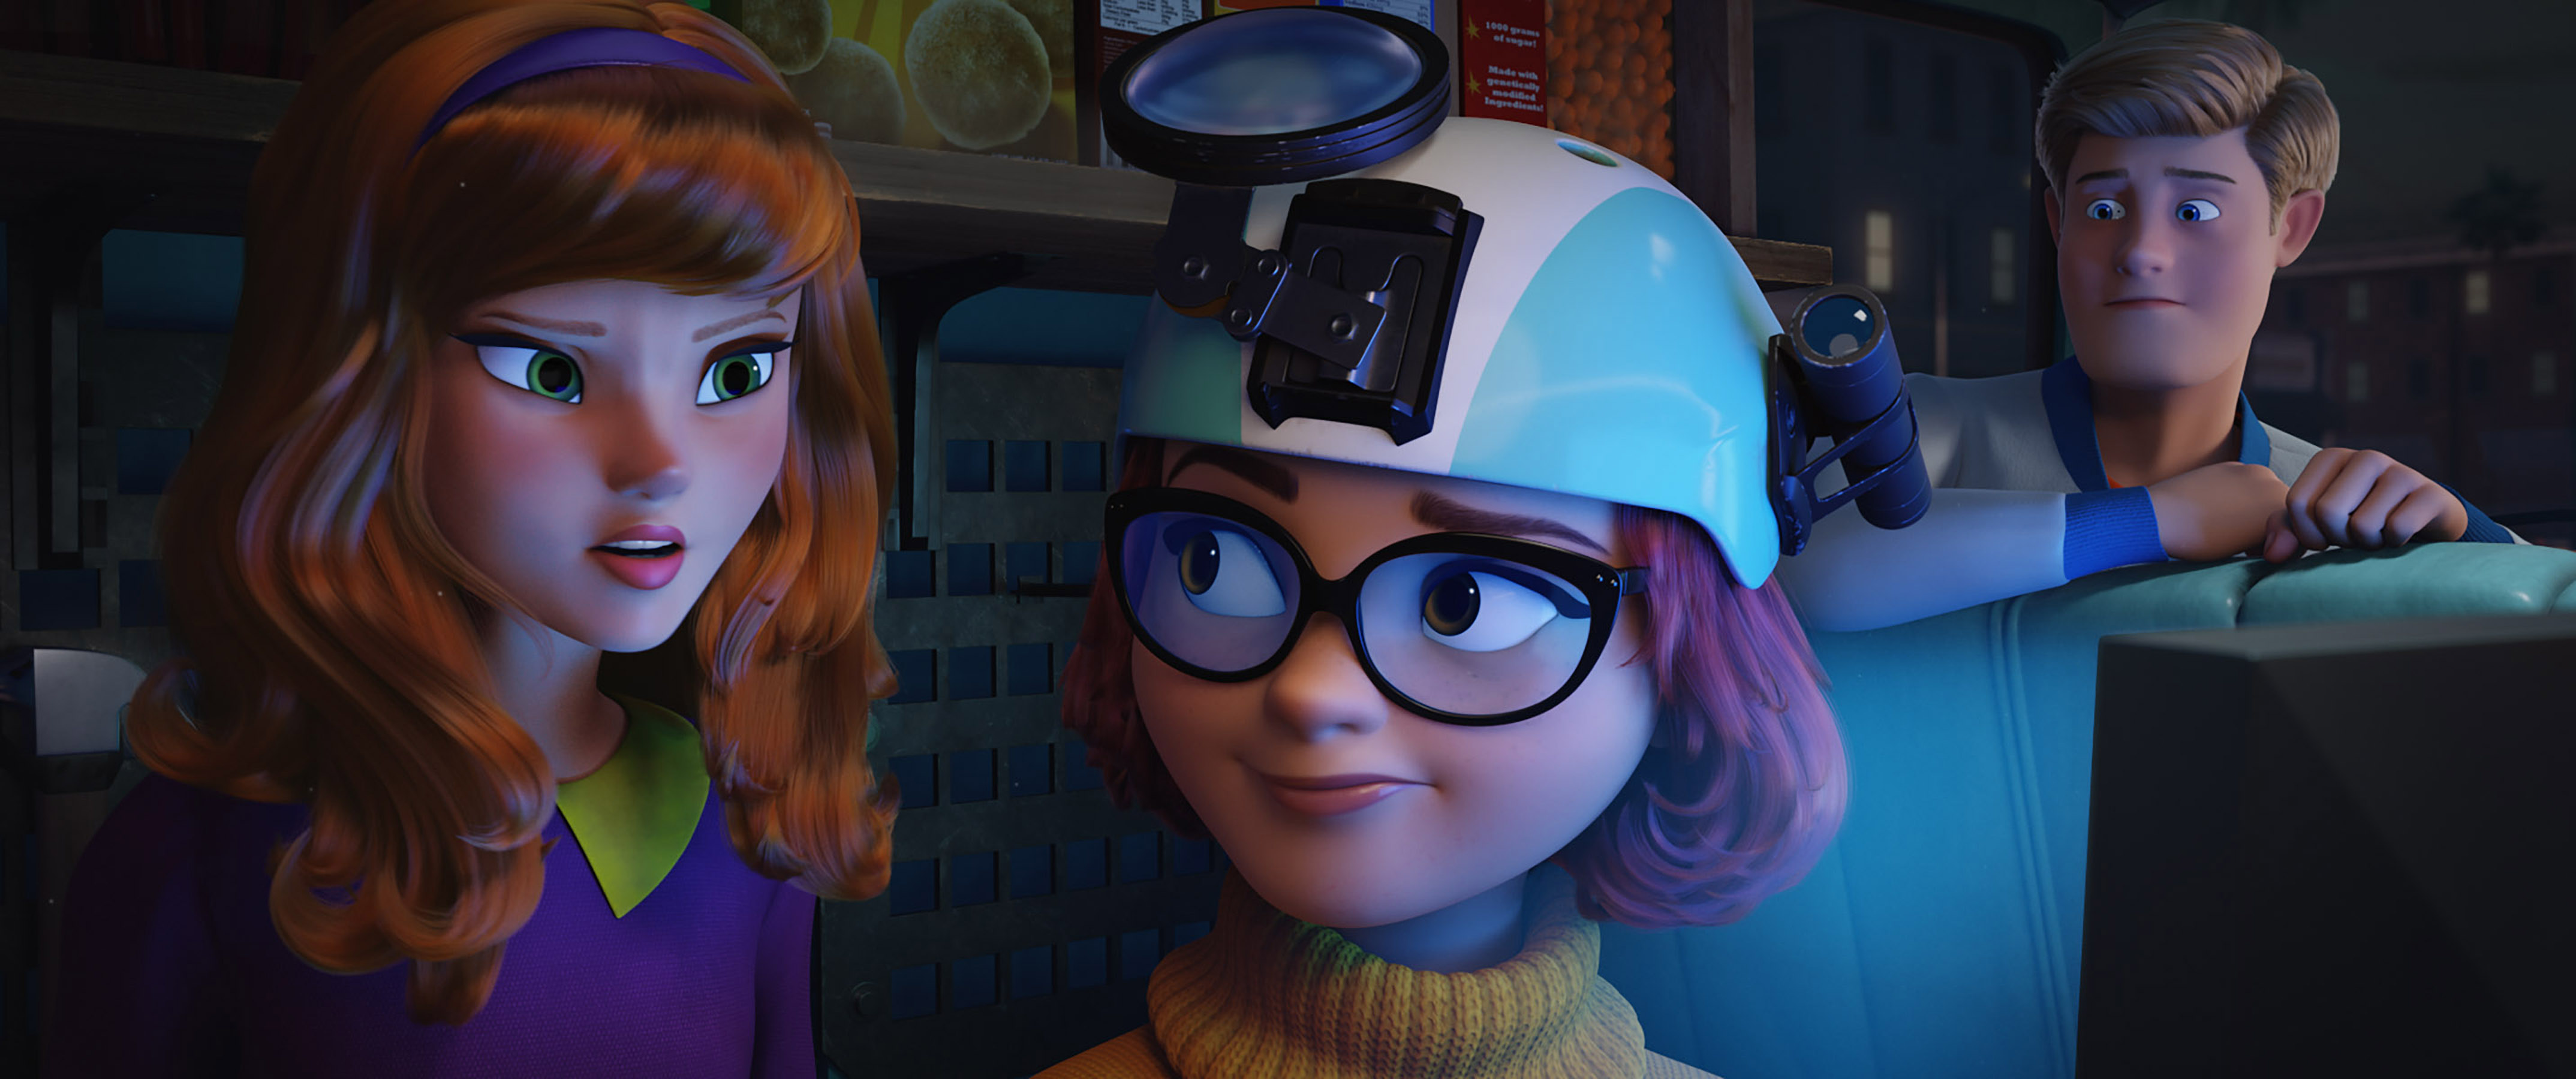 """(L-r) Daphne voiced by AMANDA SEYFRIED, Fred voiced by ZAC EFRON and Velma voiced by GINA RODRIGUEZ in the new animated adventure """"SCOOB!"""" from Warner Bros. Pictures and Warner Animation Group. Courtesy of Warner Bros. Pictures"""